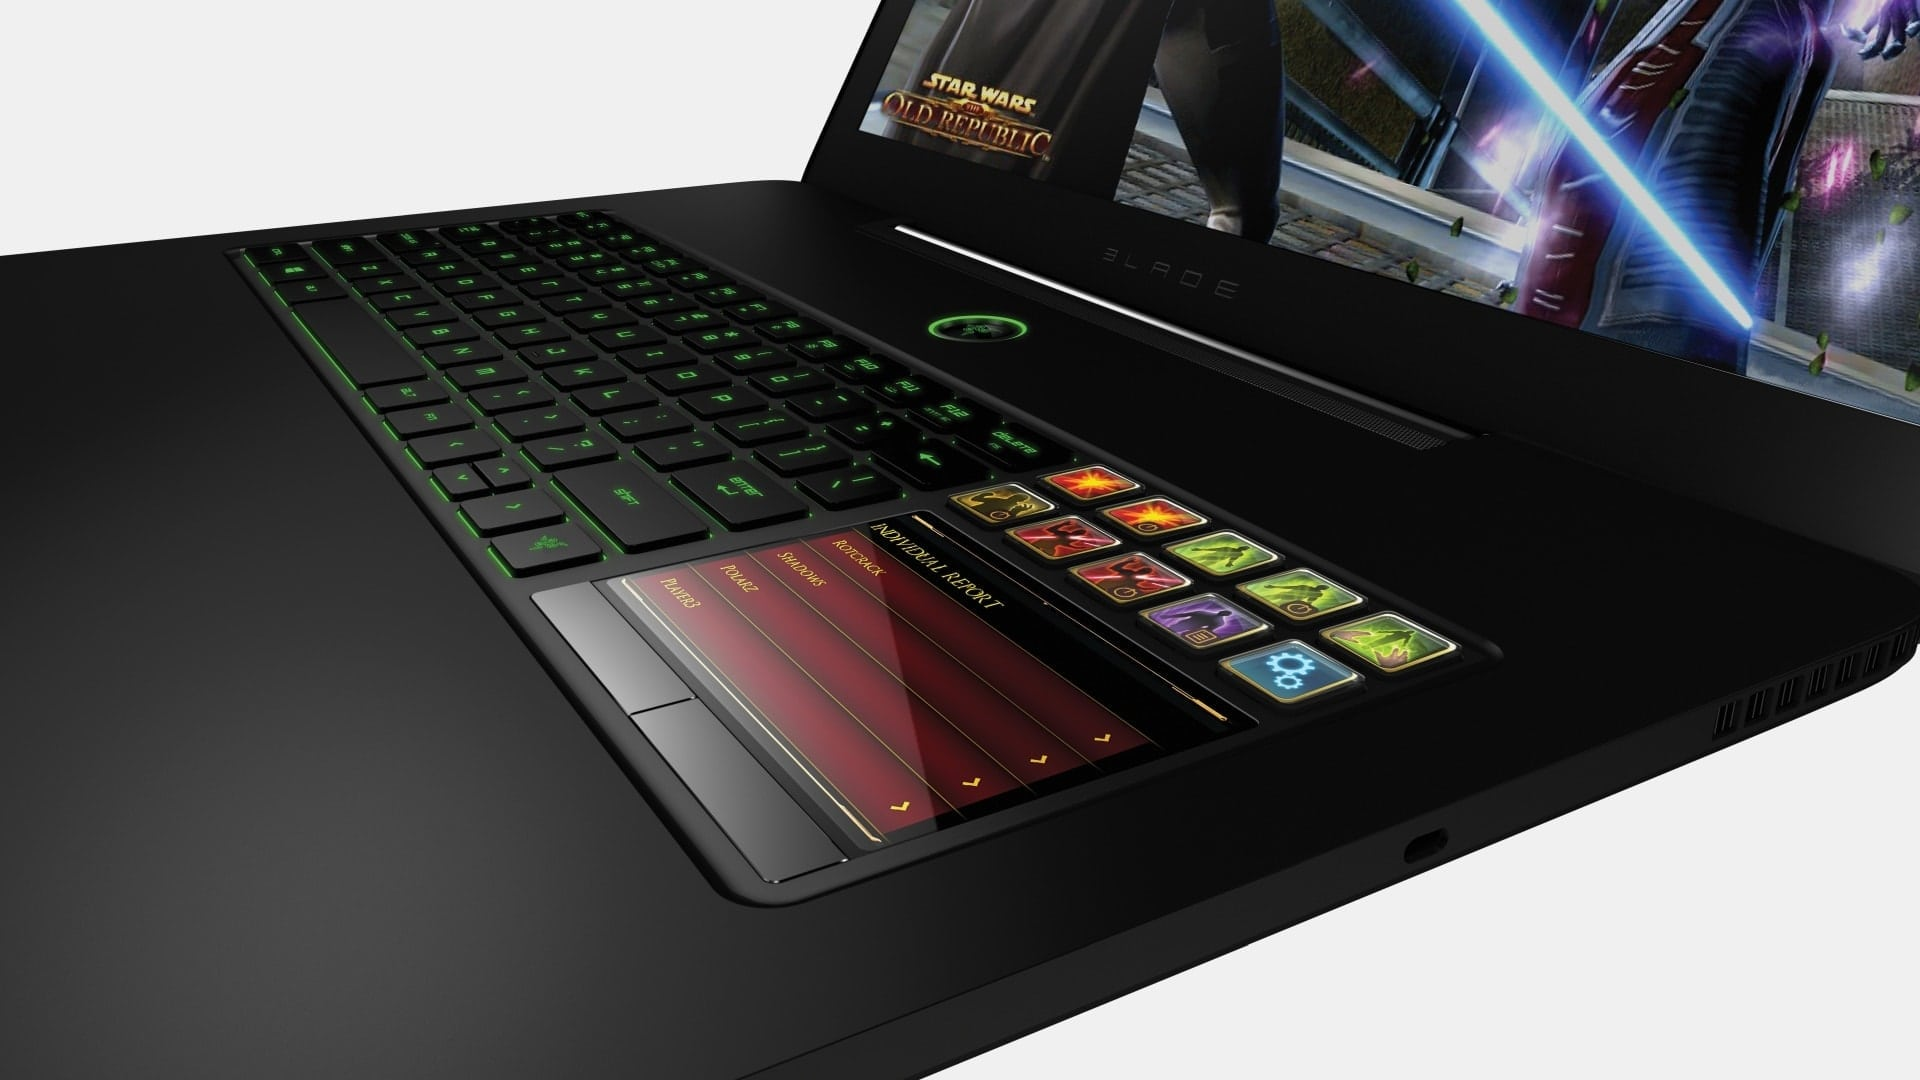 gaming laptop under 800 dollars